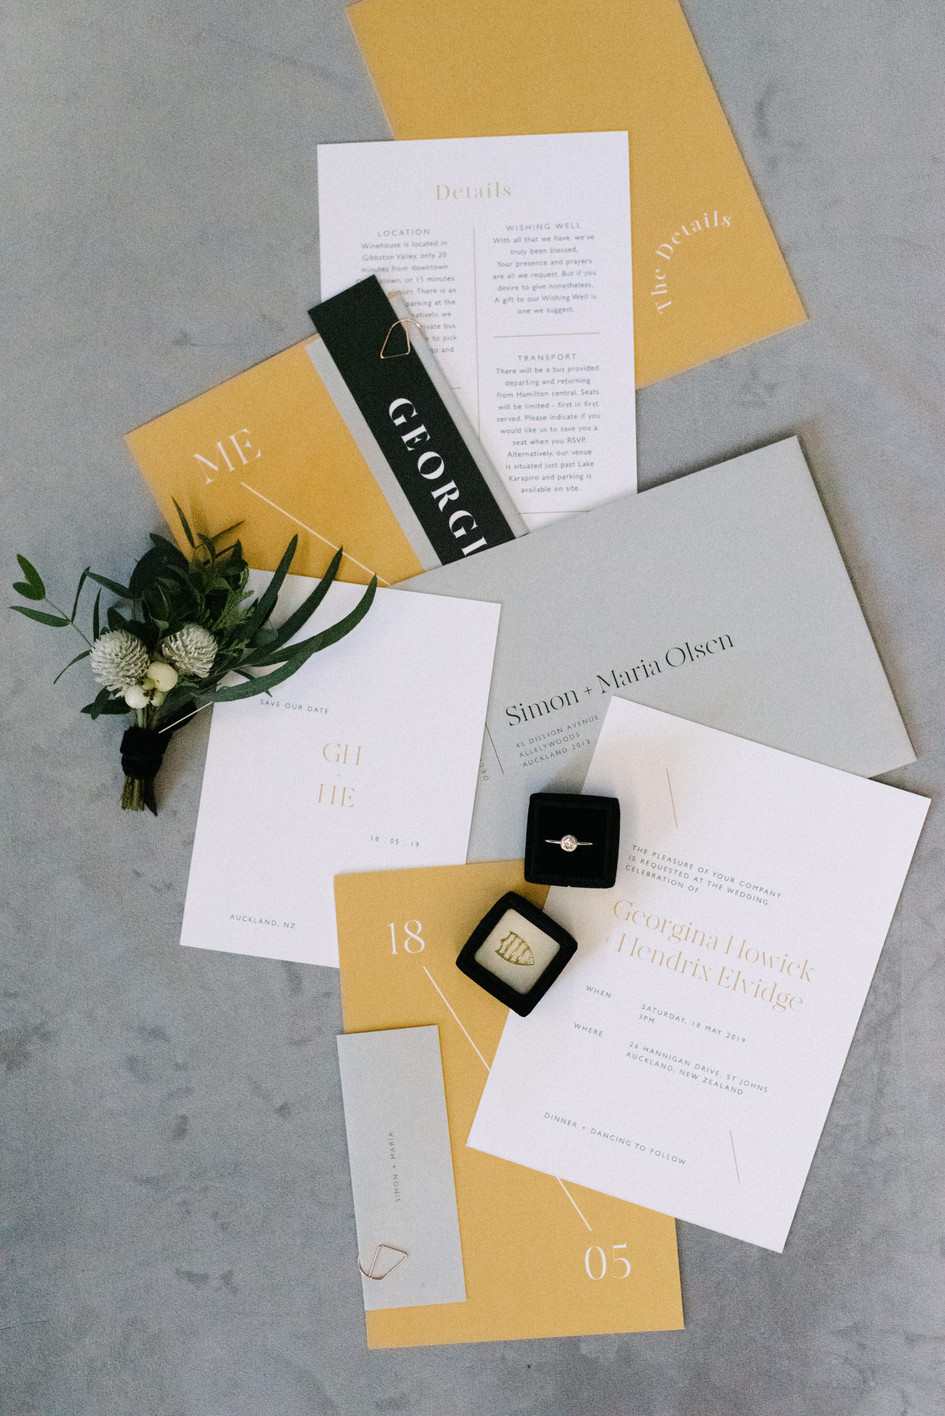 auckland_wedding_invites.jpg